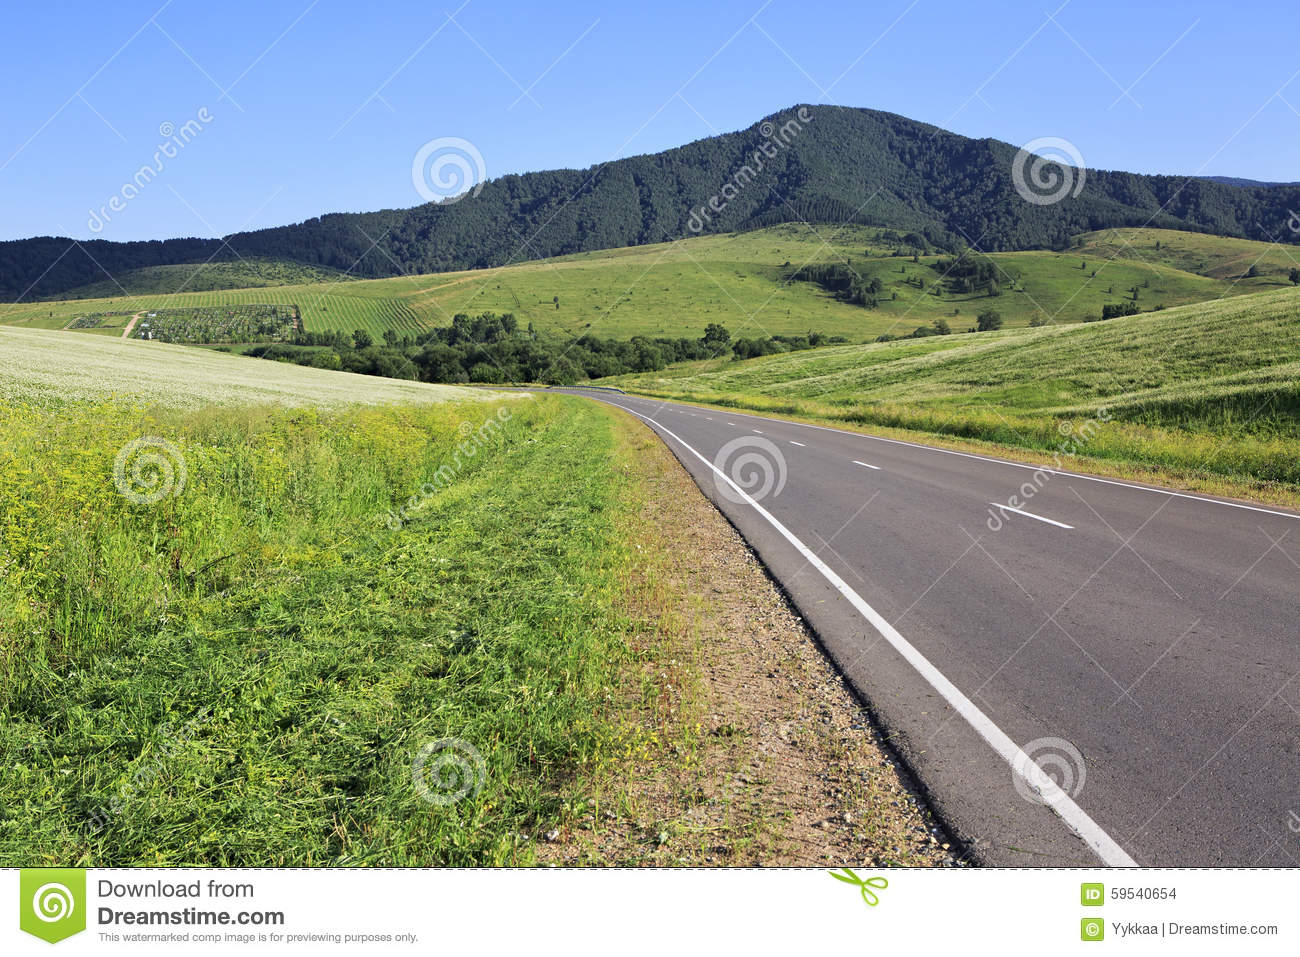 pennsylvania county map with Stock Photo Beautiful Road Farm Fields Altai Krai Russia Image59540654 on City Map likewise Regional Facts besides  likewise Forbes Field moreover Family 20Tree 20Maps.